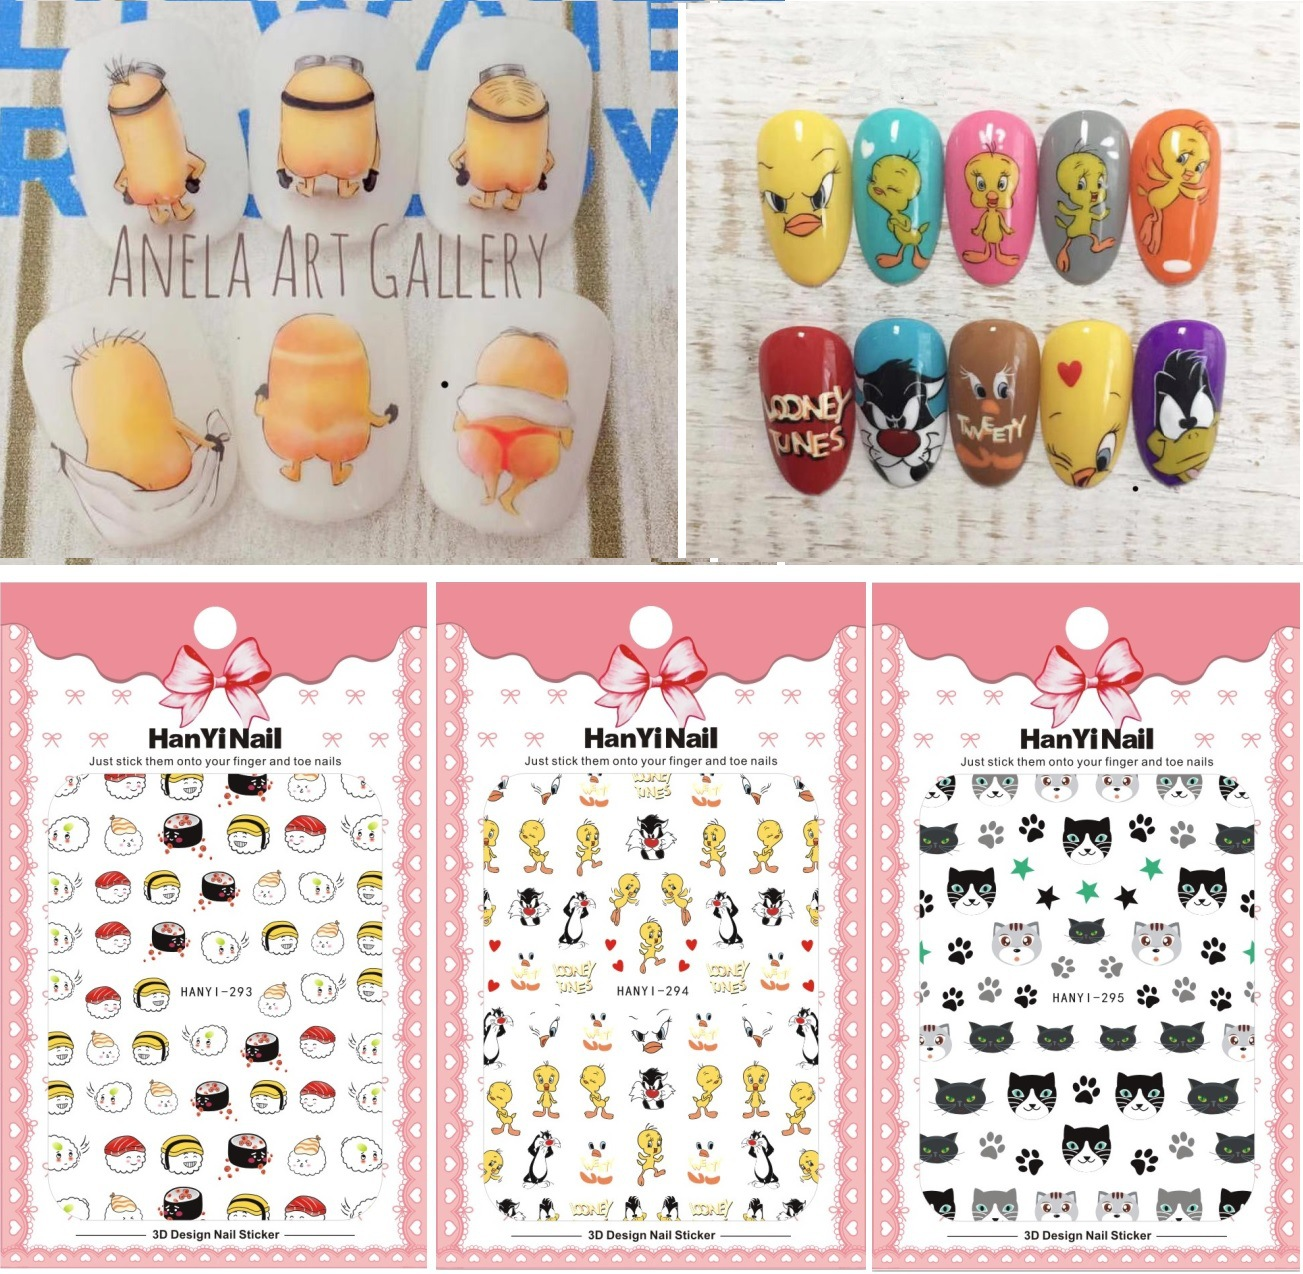 Nail Sticker Nail Decals Huang Pi Cat Star People With Gum Cartoon HANYI293-297